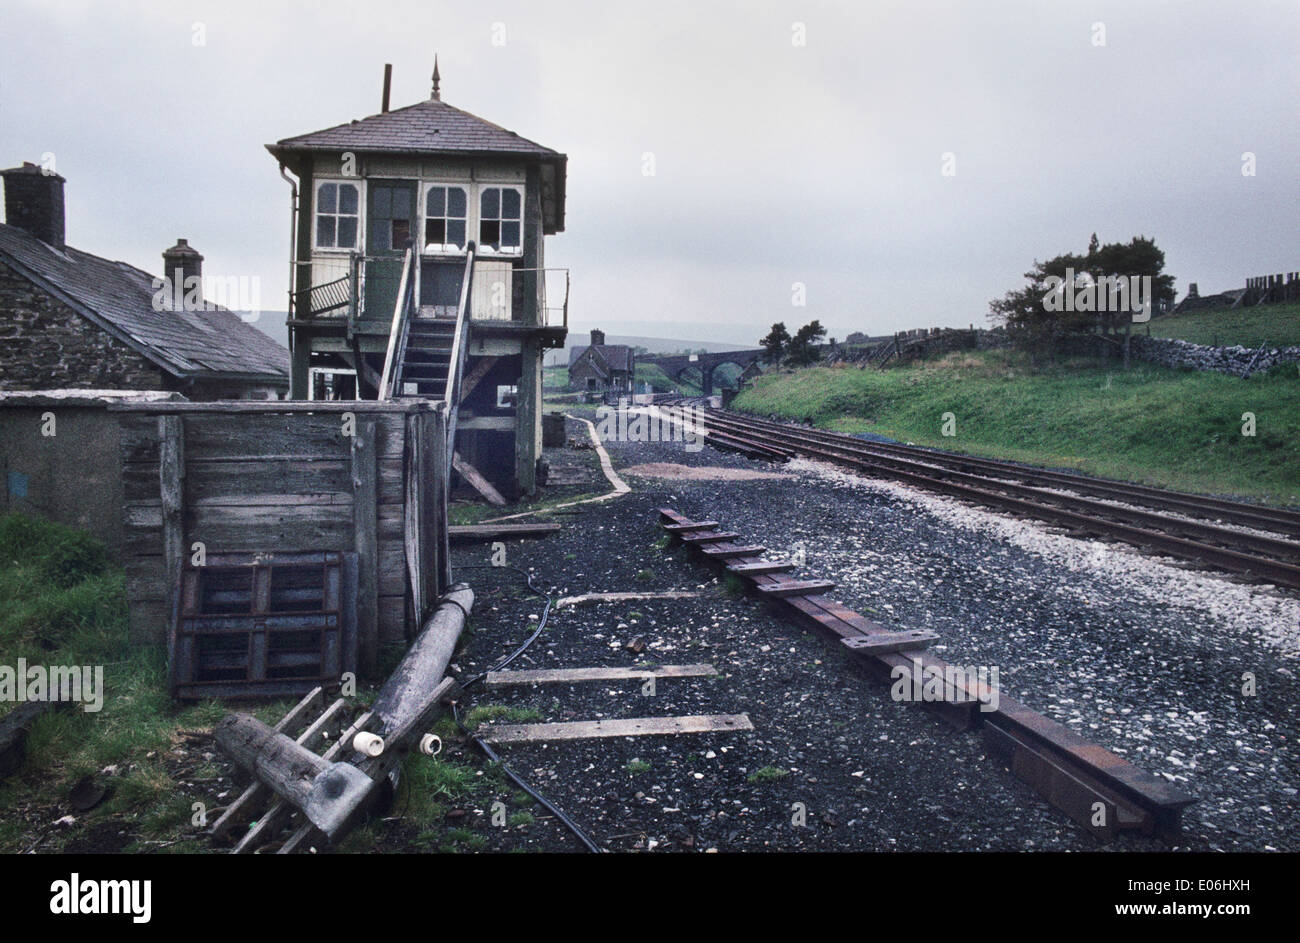 Dent railway station, on the Settle-Carlisle line, pictured in 1984, prior to the removal of signal box and renovation and conversion of buildings to holiday lets - Stock Image